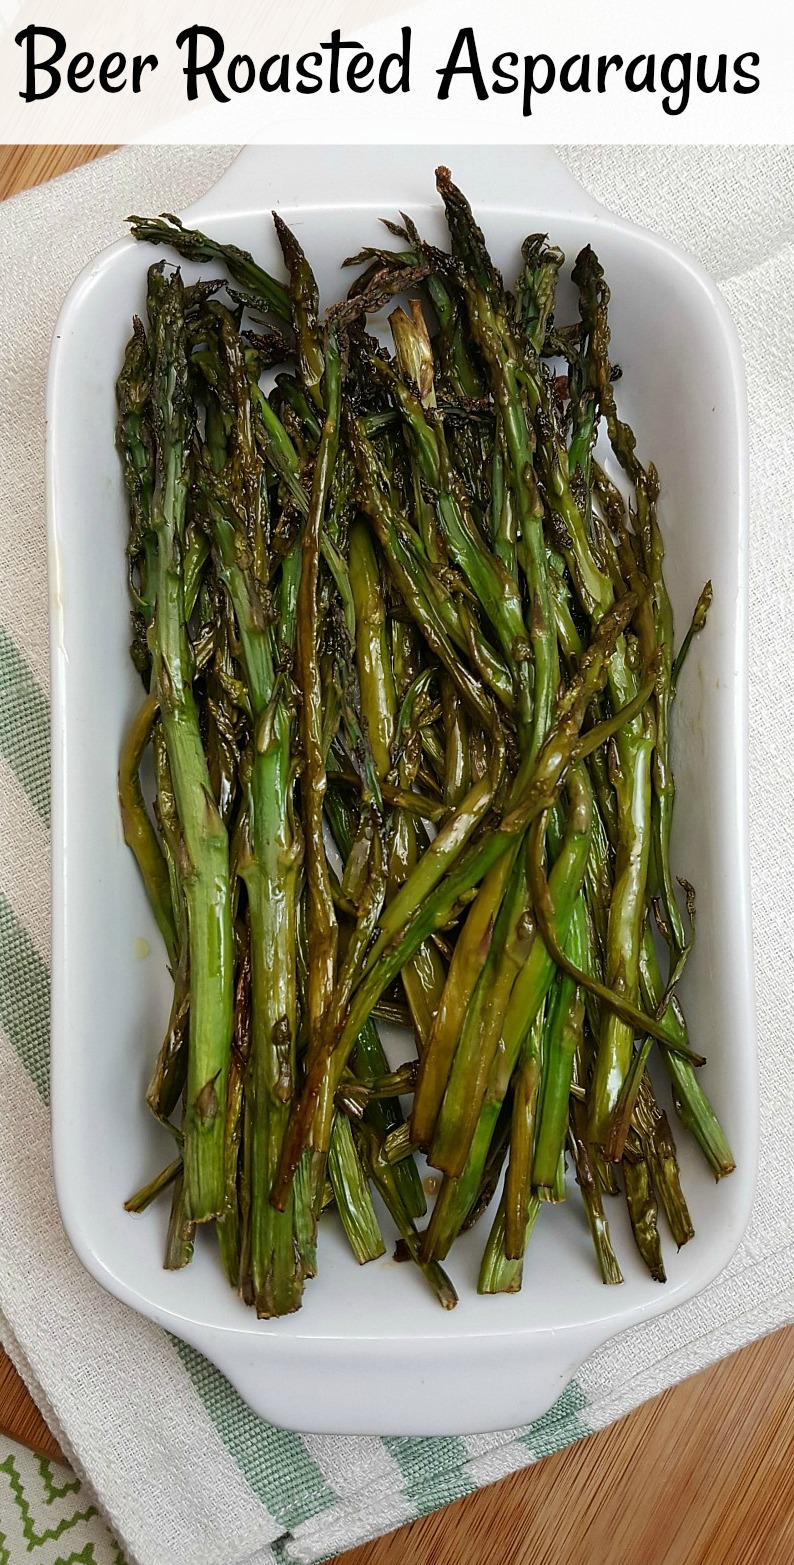 Beer Roasted Asparagus Recipe